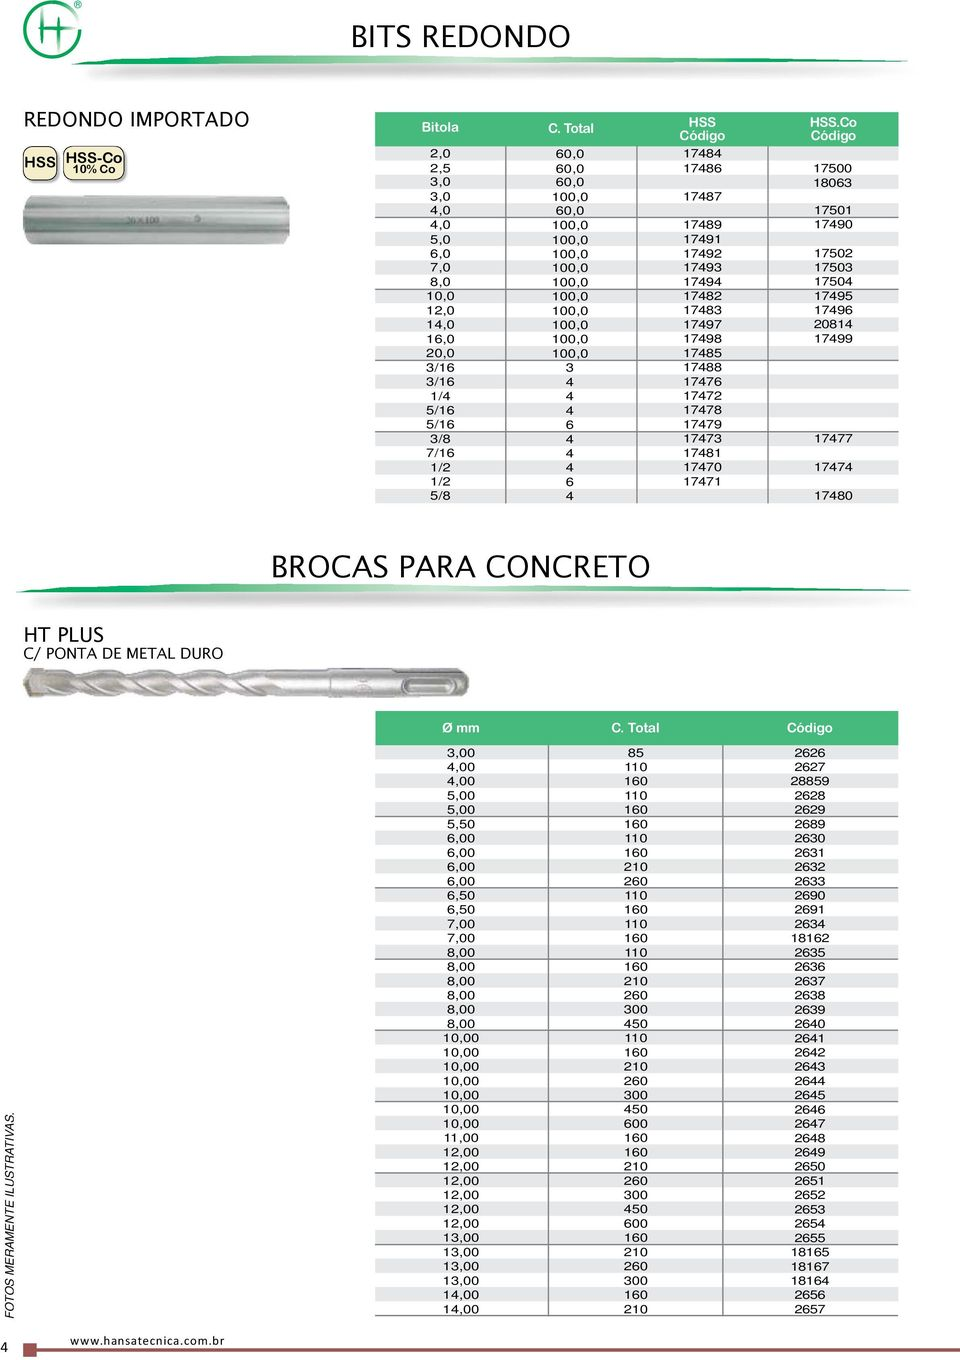 Co 7 7 0 0 77 79 790 79 79 79 79 7 79 7 79 797 0 79 799 7 7 77 77 77 779 77 777 7 7 77 77 70 BROCAS PARA CONCRETO HT PLUS C/ PONTA DE METAL DURO